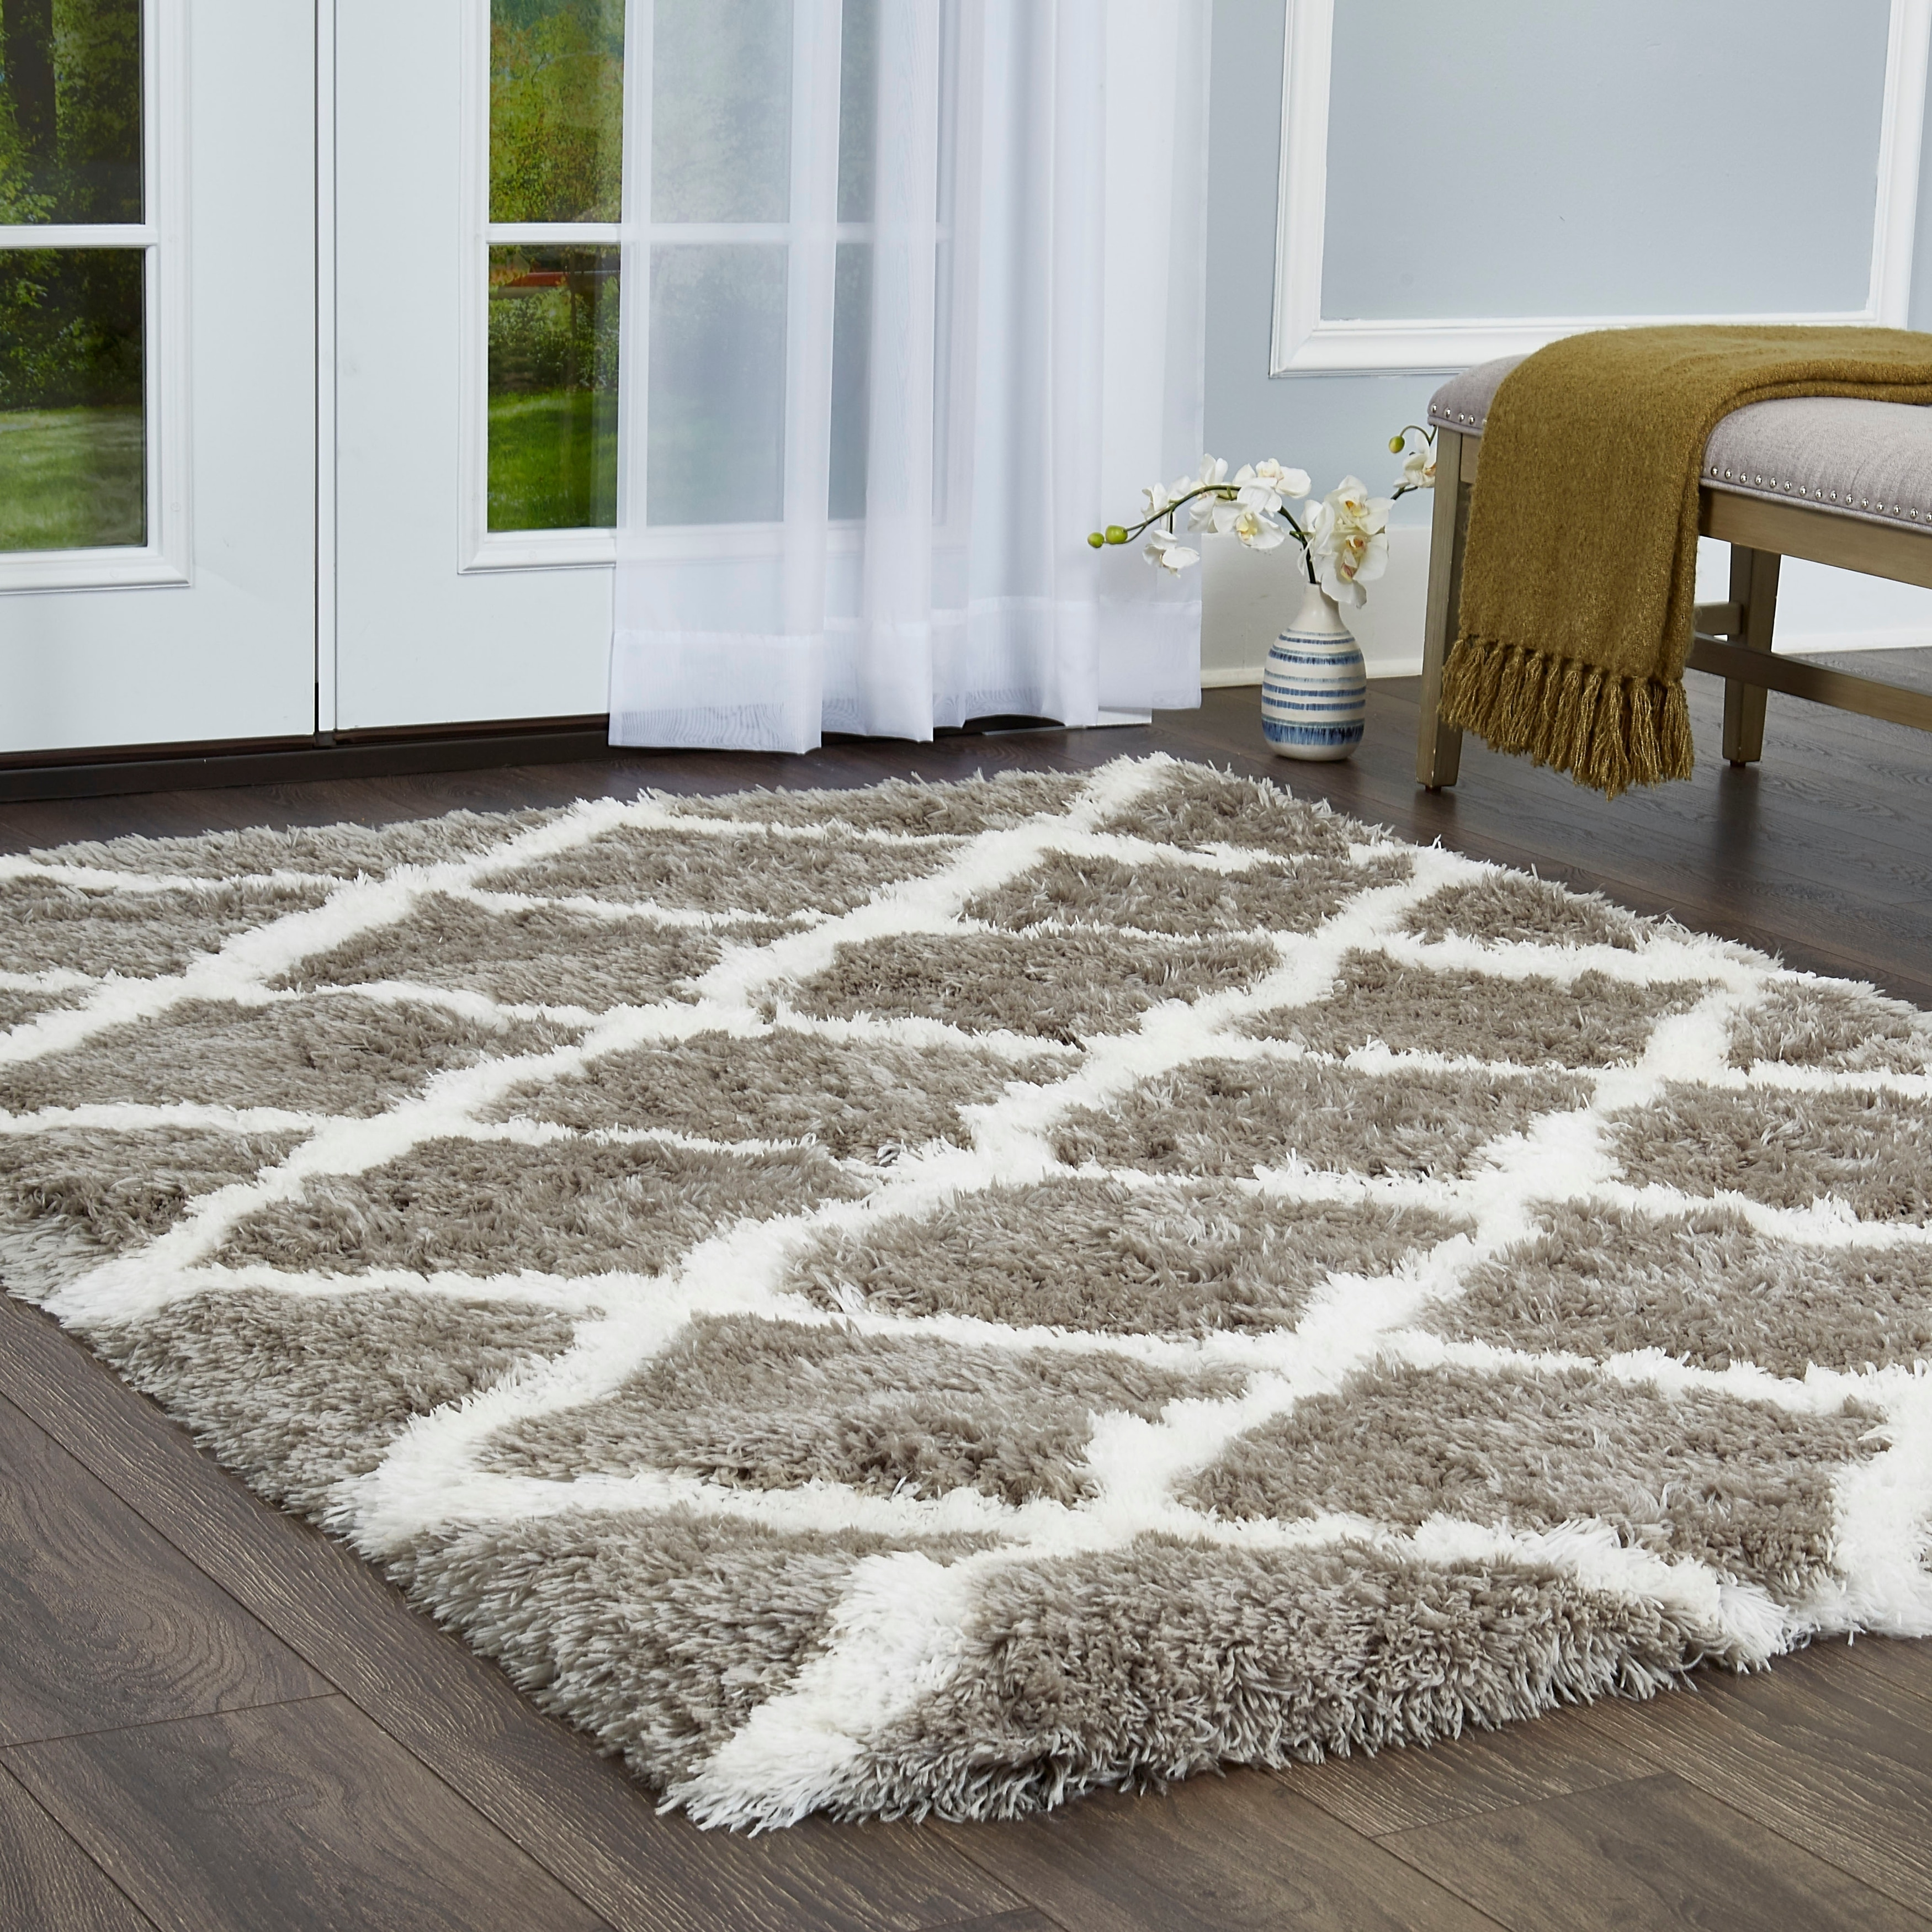 Picture of: Paramount Diamond Gray White Shag Area Rug By Elle Home 5 2 X7 2 Overstock 23465217